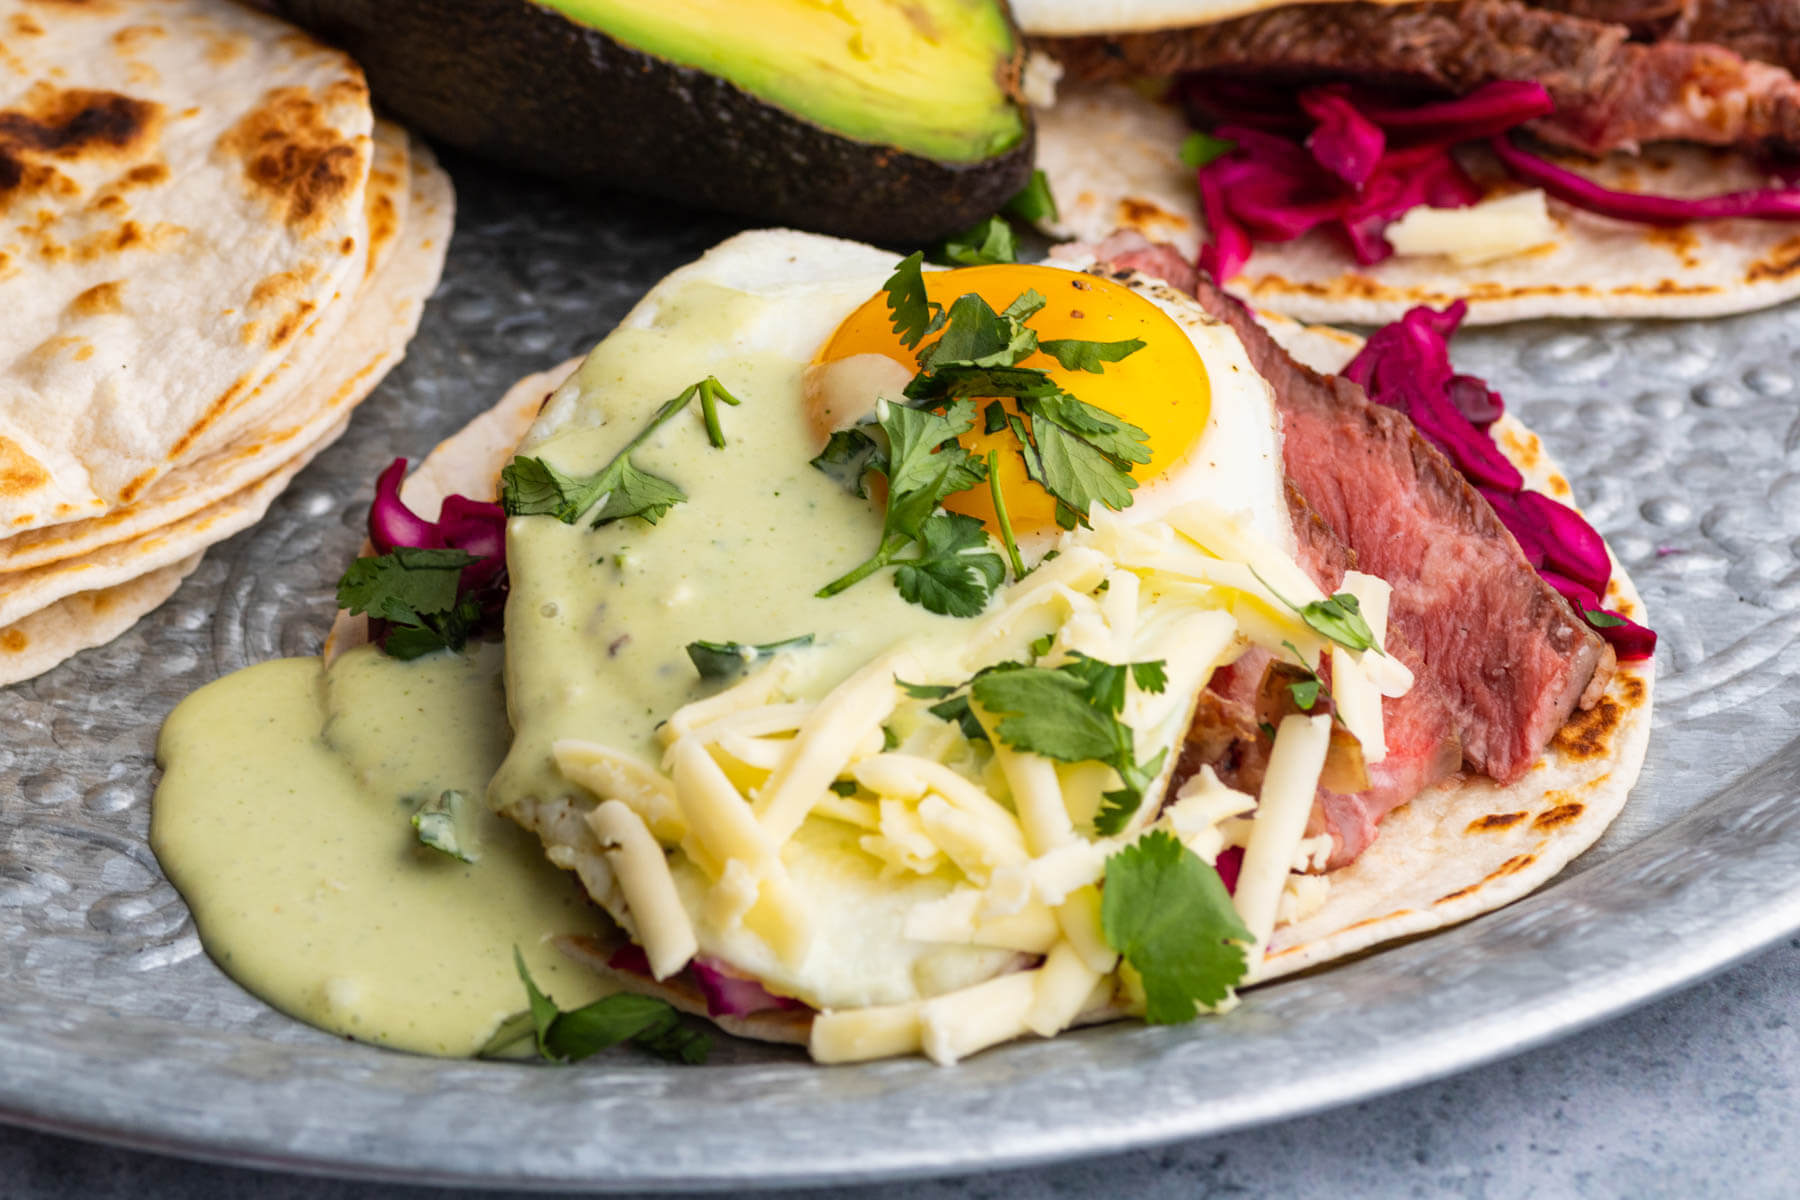 A steak taco topped with sunny side up fried egg, grated cheese, cilantro, and green sauce.